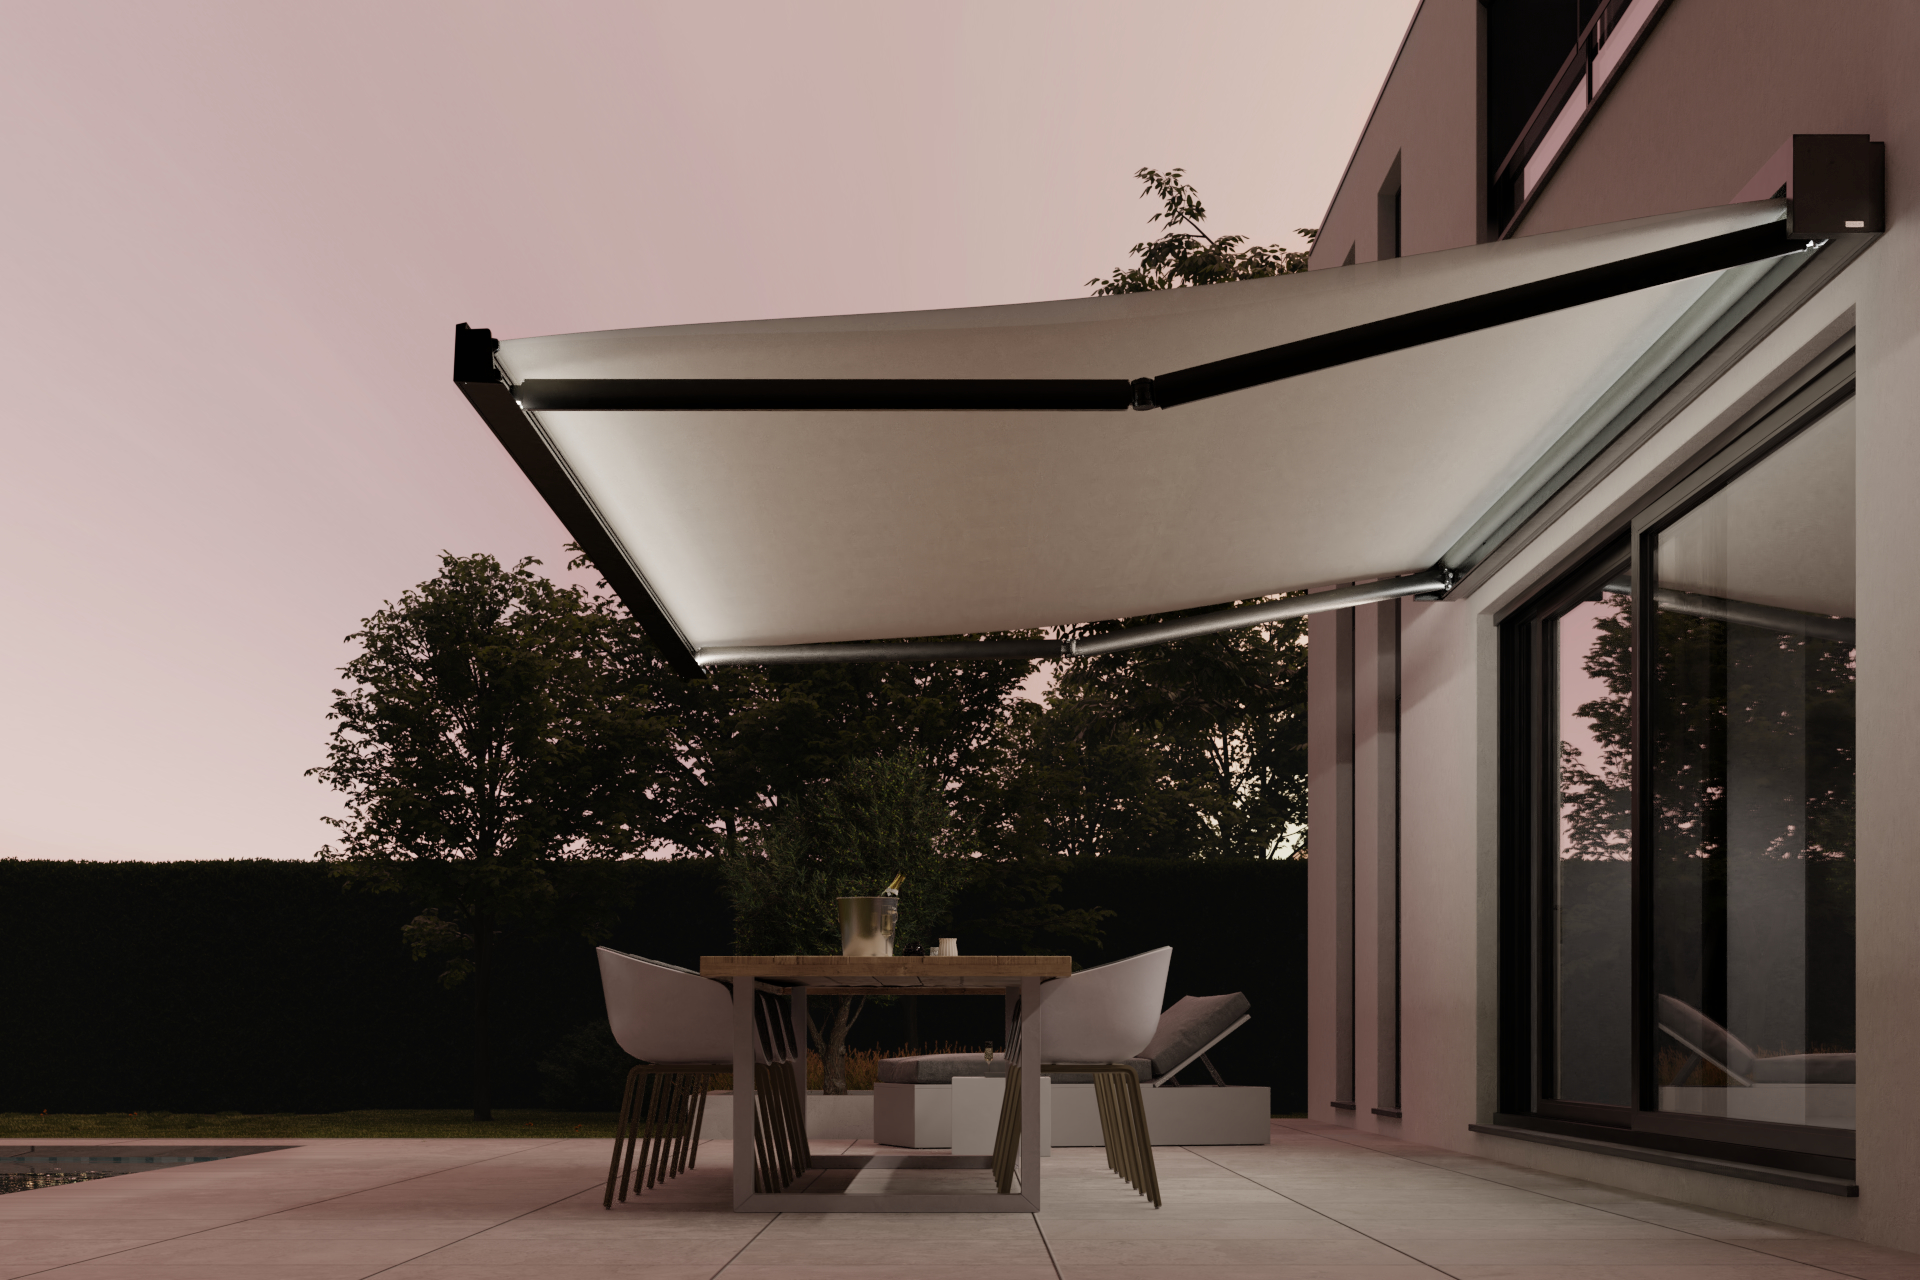 Lux_open_awning_open_led (2)